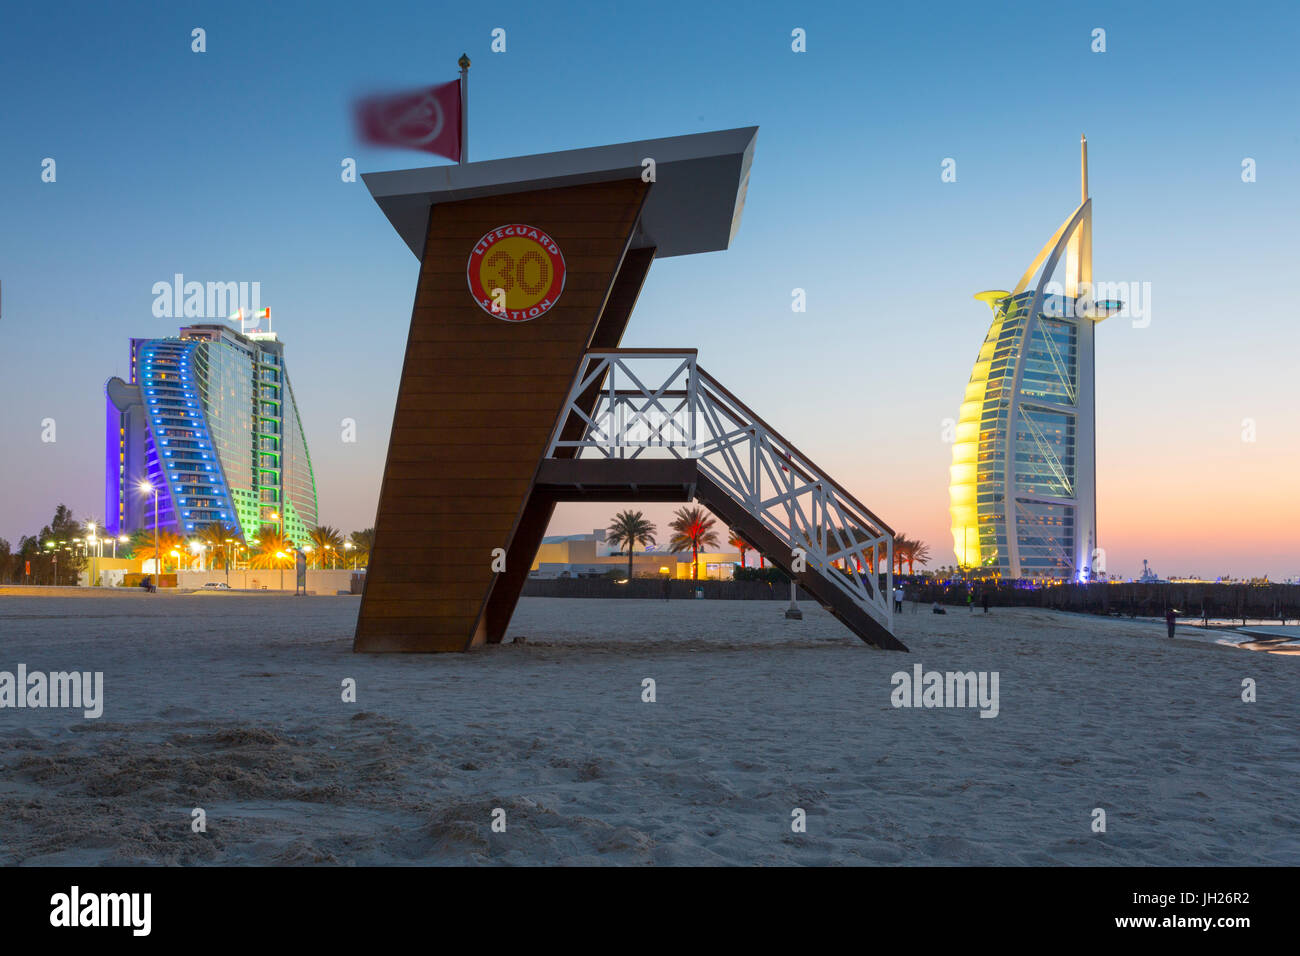 Burj Al Arab Hotel, sunset and lifeguard watchtower on Jumeirah Beach, Dubai, United Arab Emirates, Middle East - Stock Image